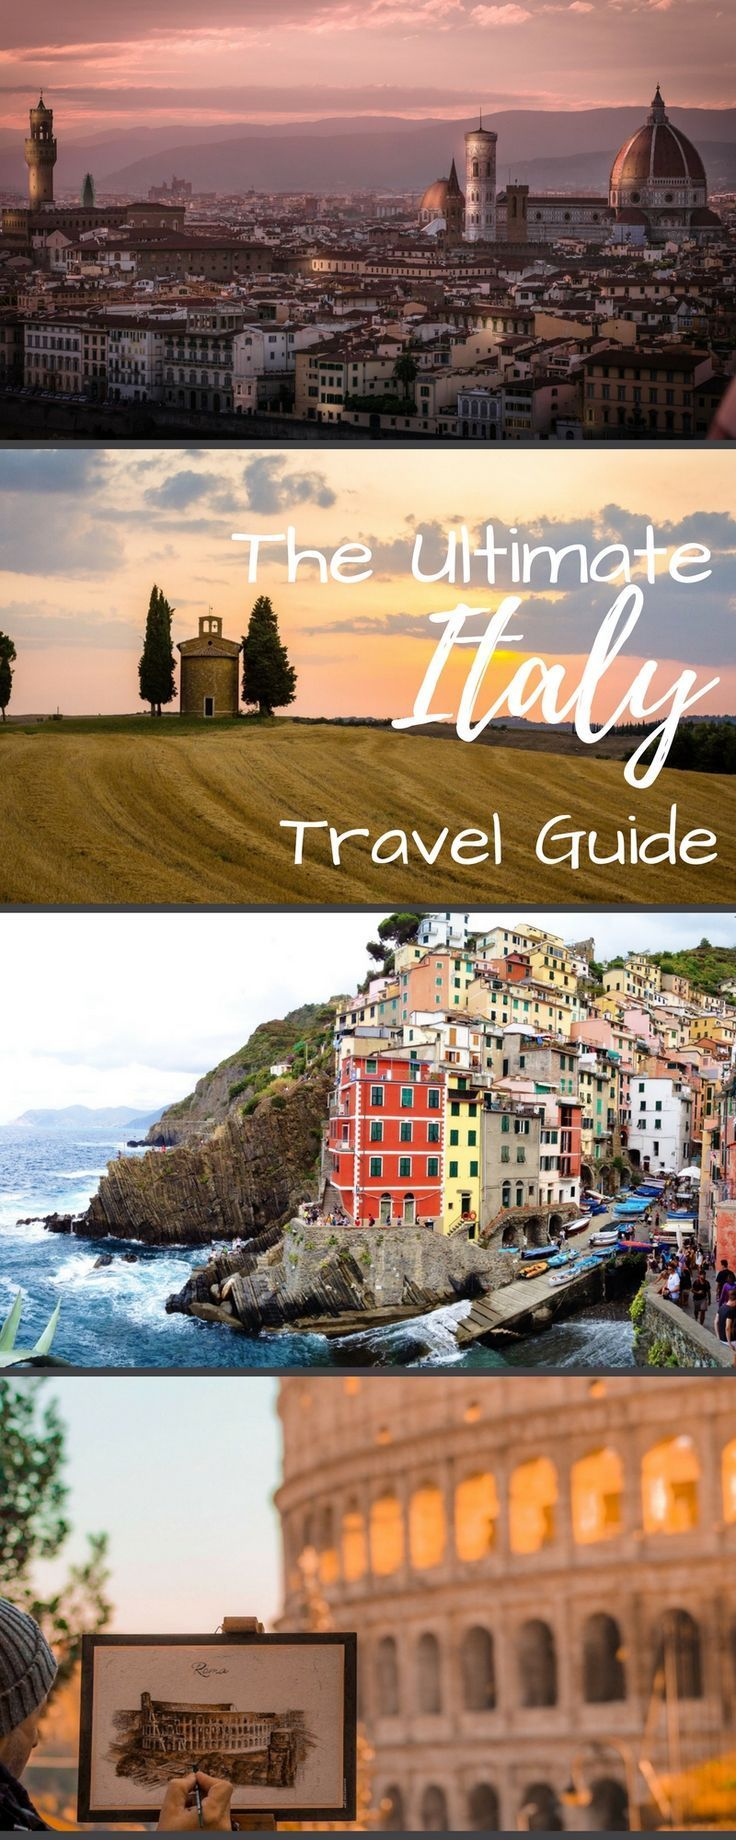 The ultimate Italy vacation travel guide. Including places and cities to visit on your vacation, itinerary ideas, honeymoon ideas, and many places like Milan, Cinque Terre, Florence, Rome, Positano, Capri, Tuscany, Venice, and Naples.